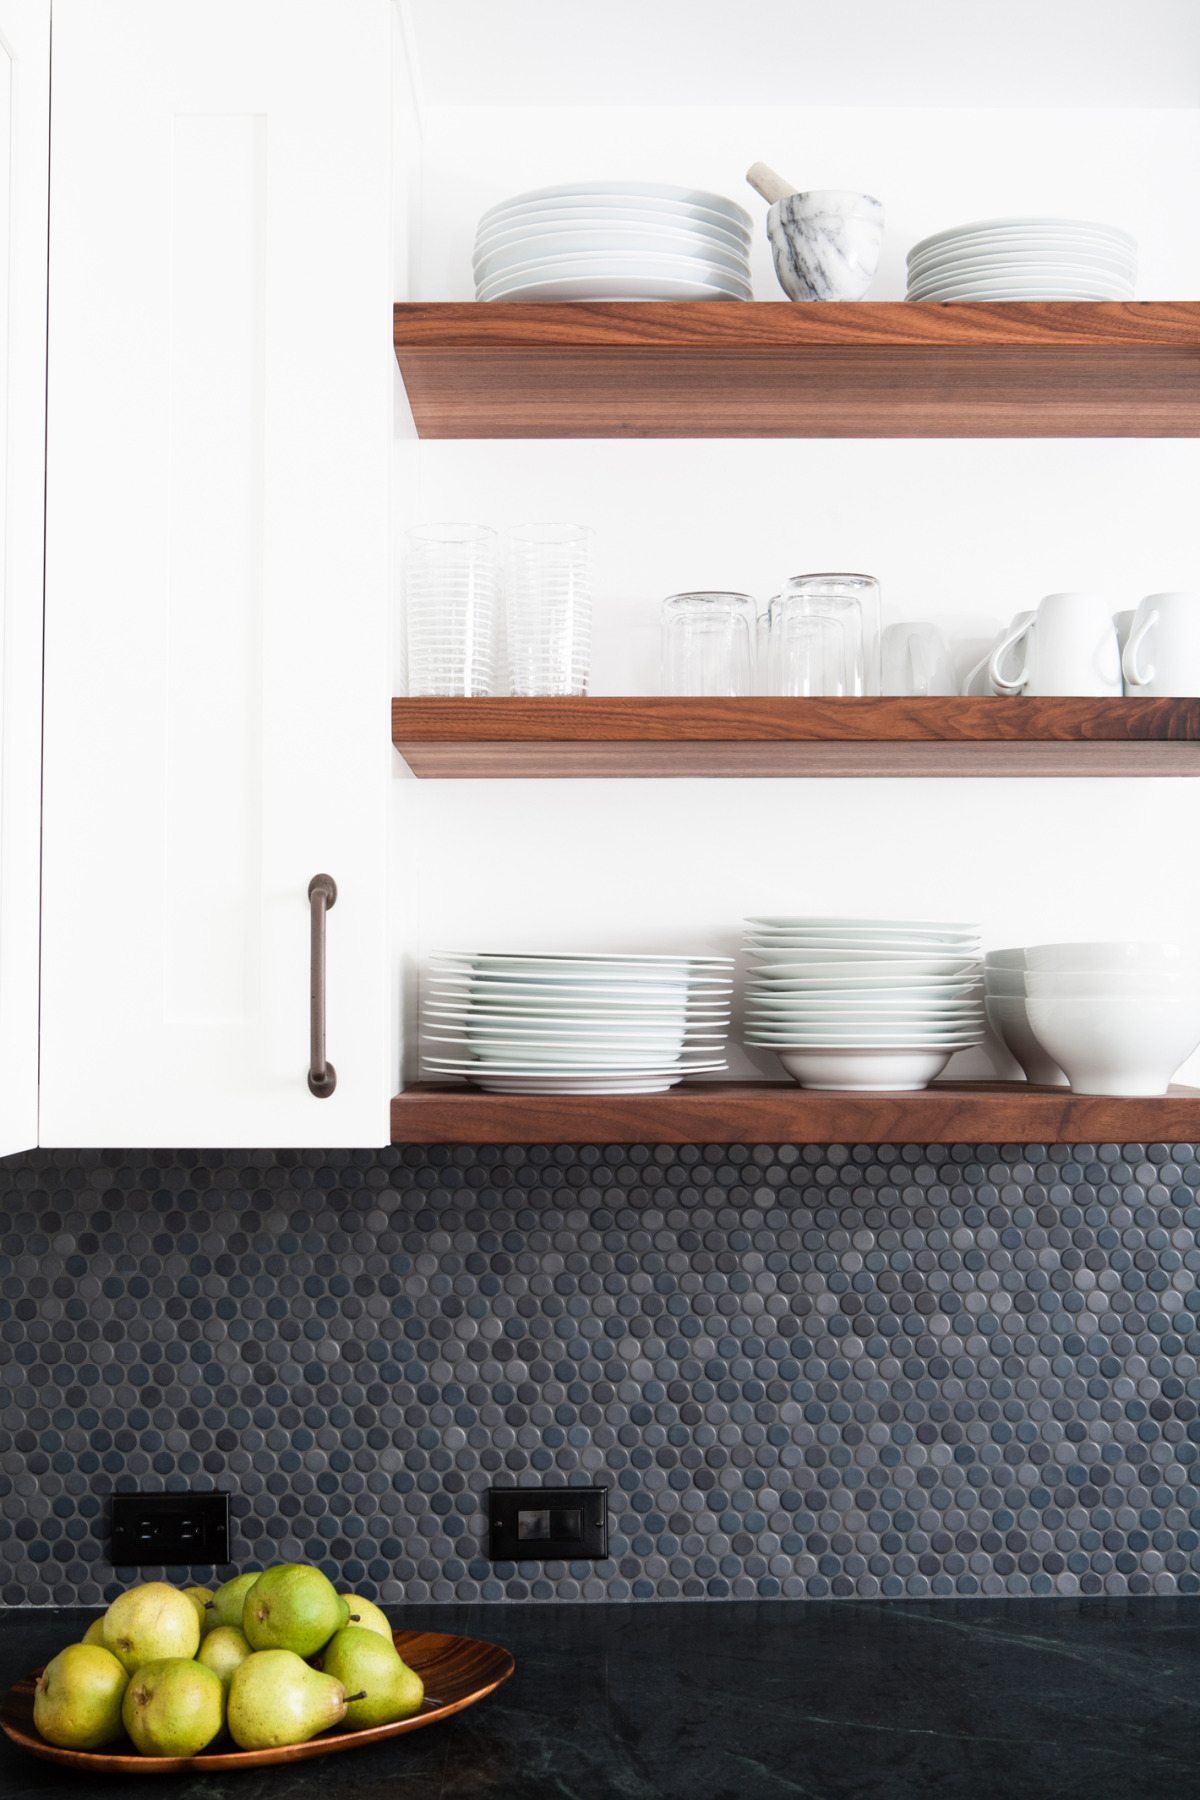 Soapstone countertops in our former house in San Francisco.